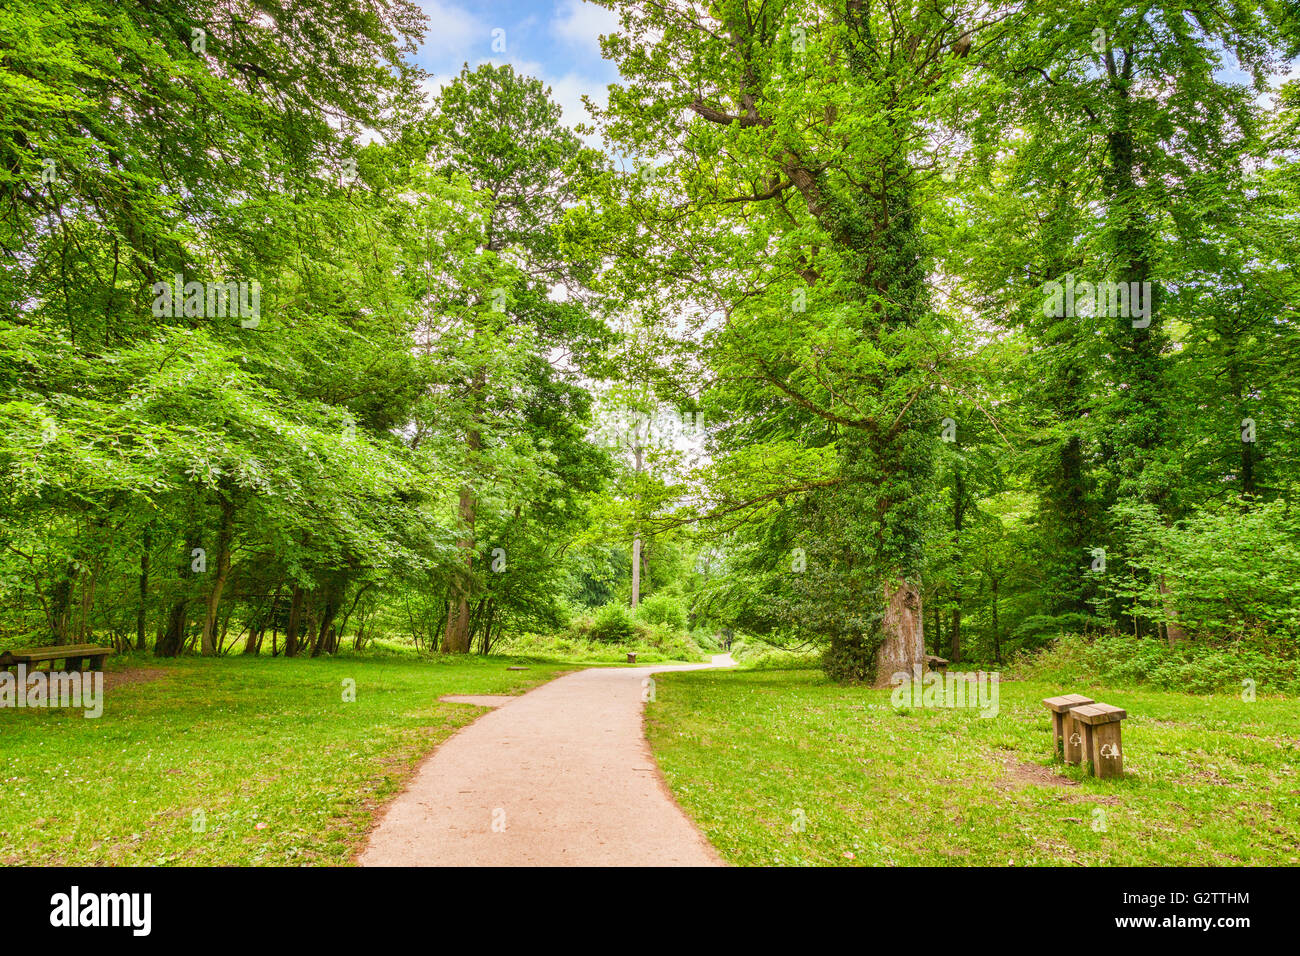 Path if the Forest of Dean, with trees in full, bright, spring, leafy, green, Gloucestershire, England, UK - Stock Image